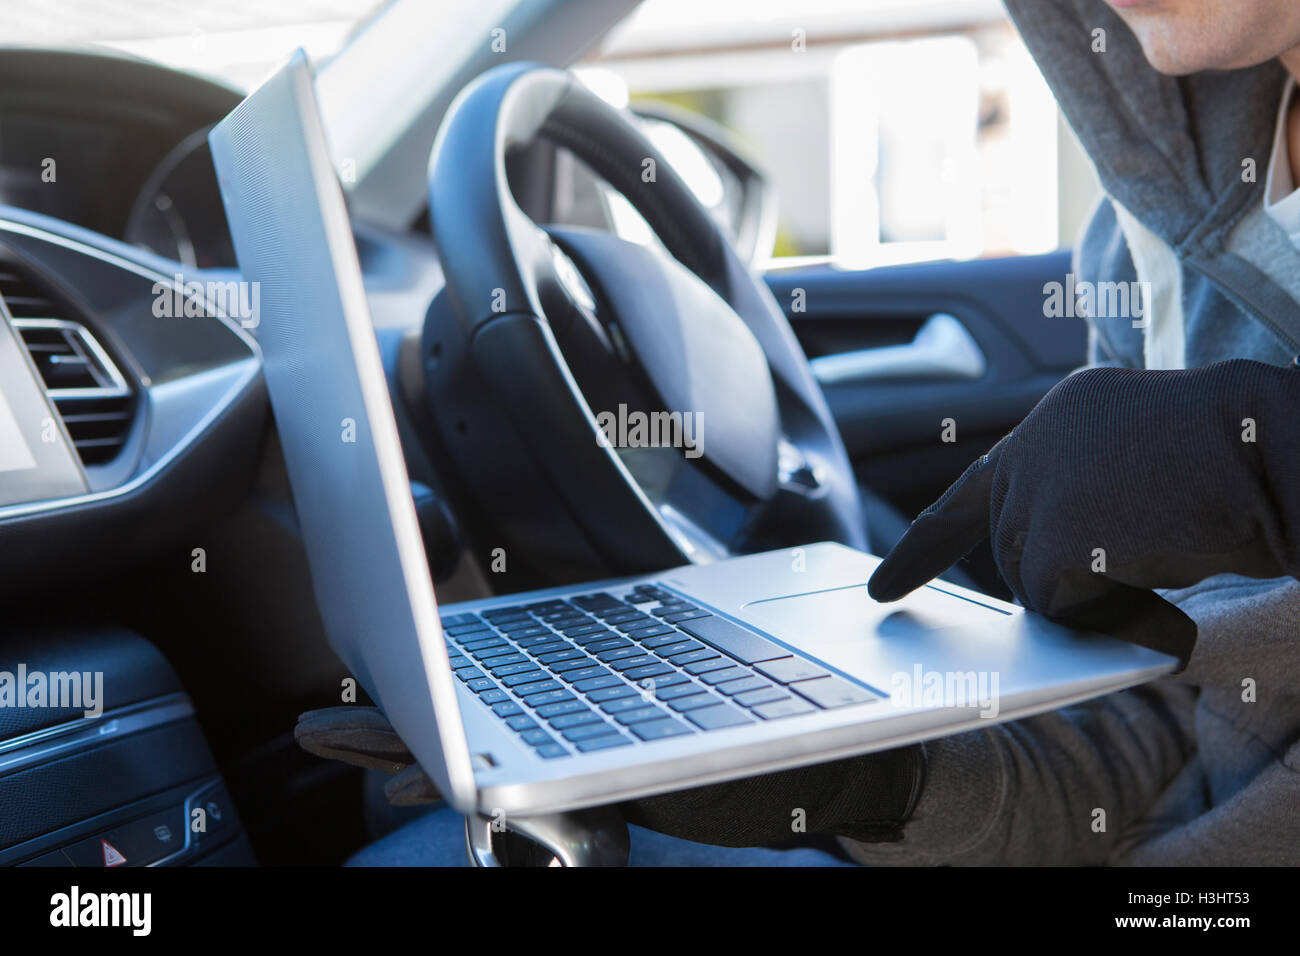 Thief Using Laptop To Hack Into Car Security Software - Stock Image